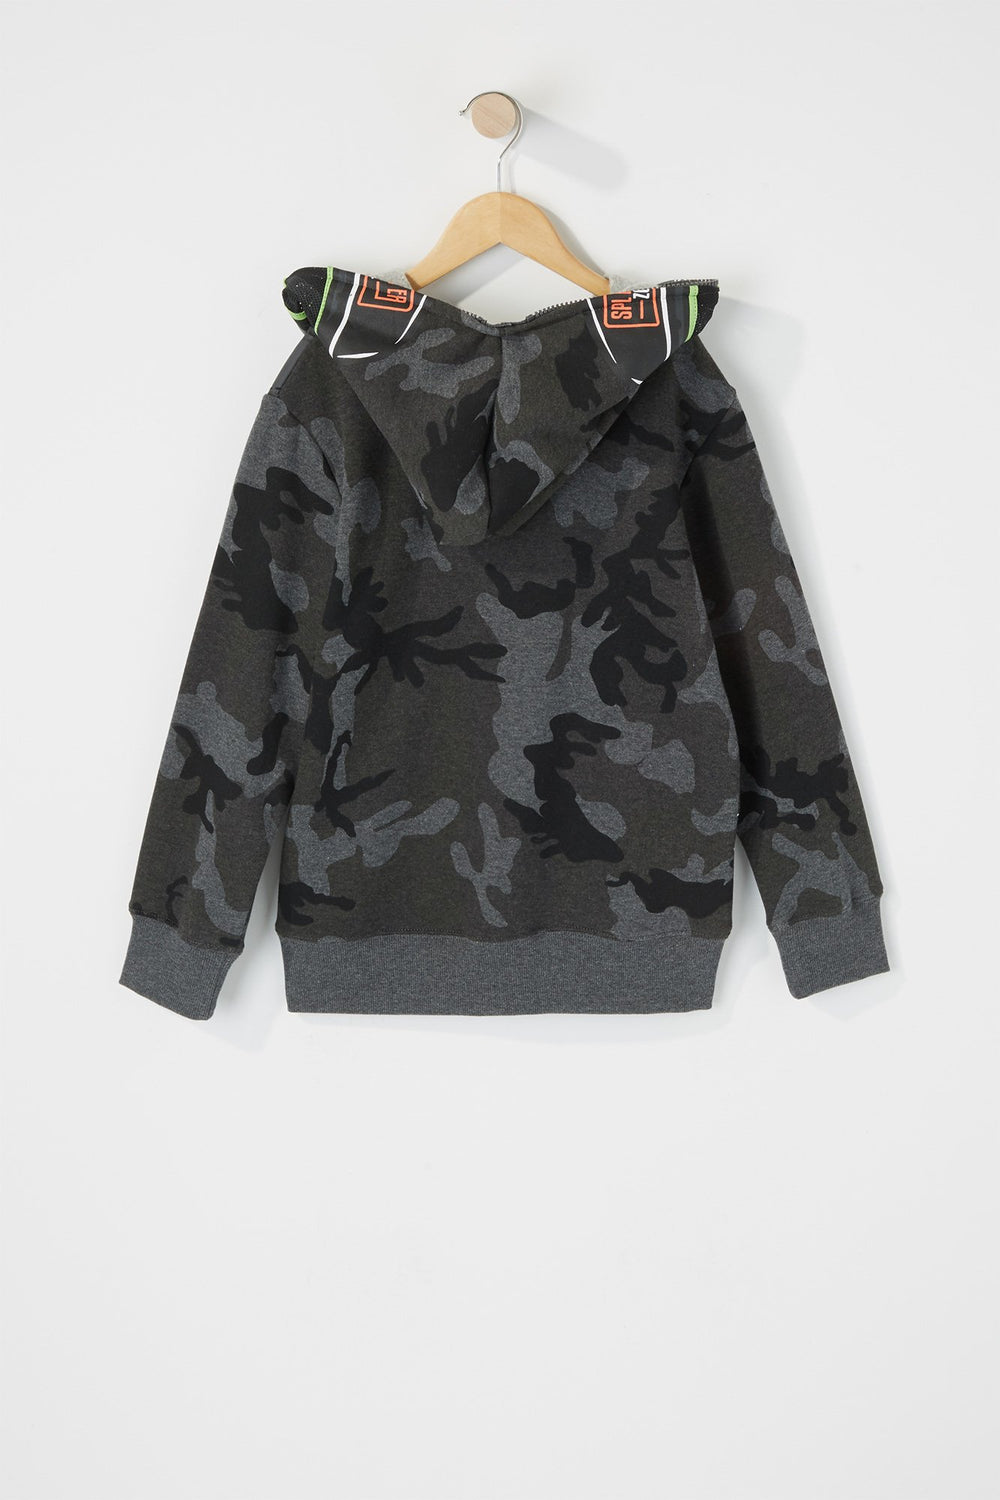 Camo Paintballer Hoodie Black with White